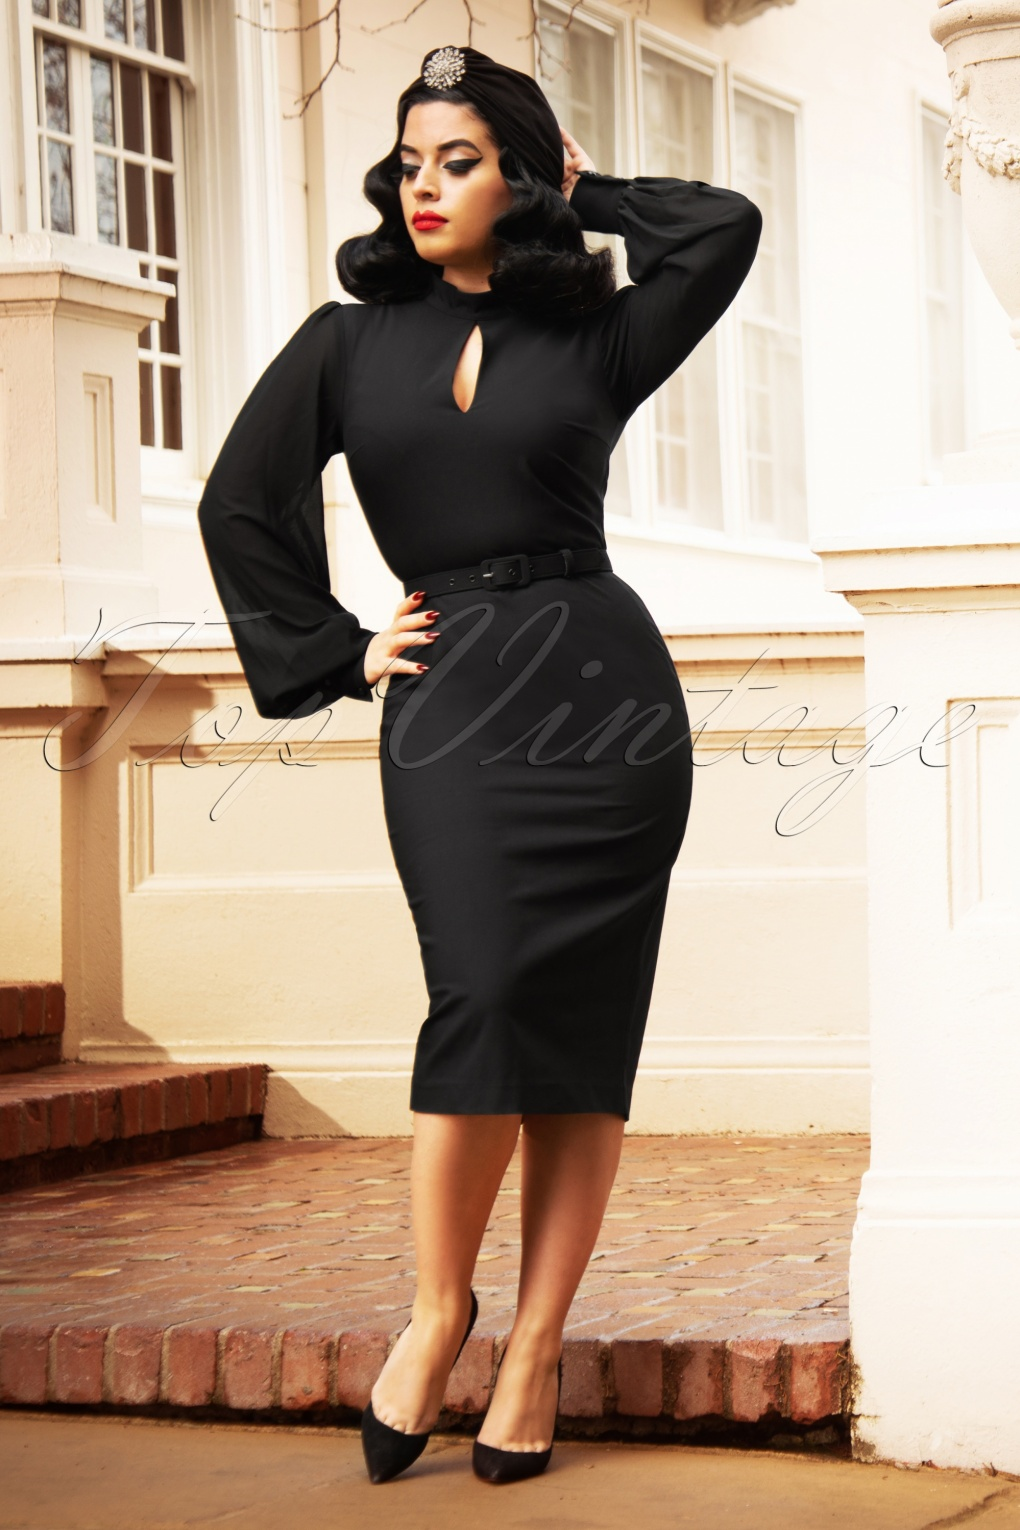 1950s Dresses, 50s Dresses | 1950s Style Dresses The Gloria Pencil Dress in Black £97.01 AT vintagedancer.com